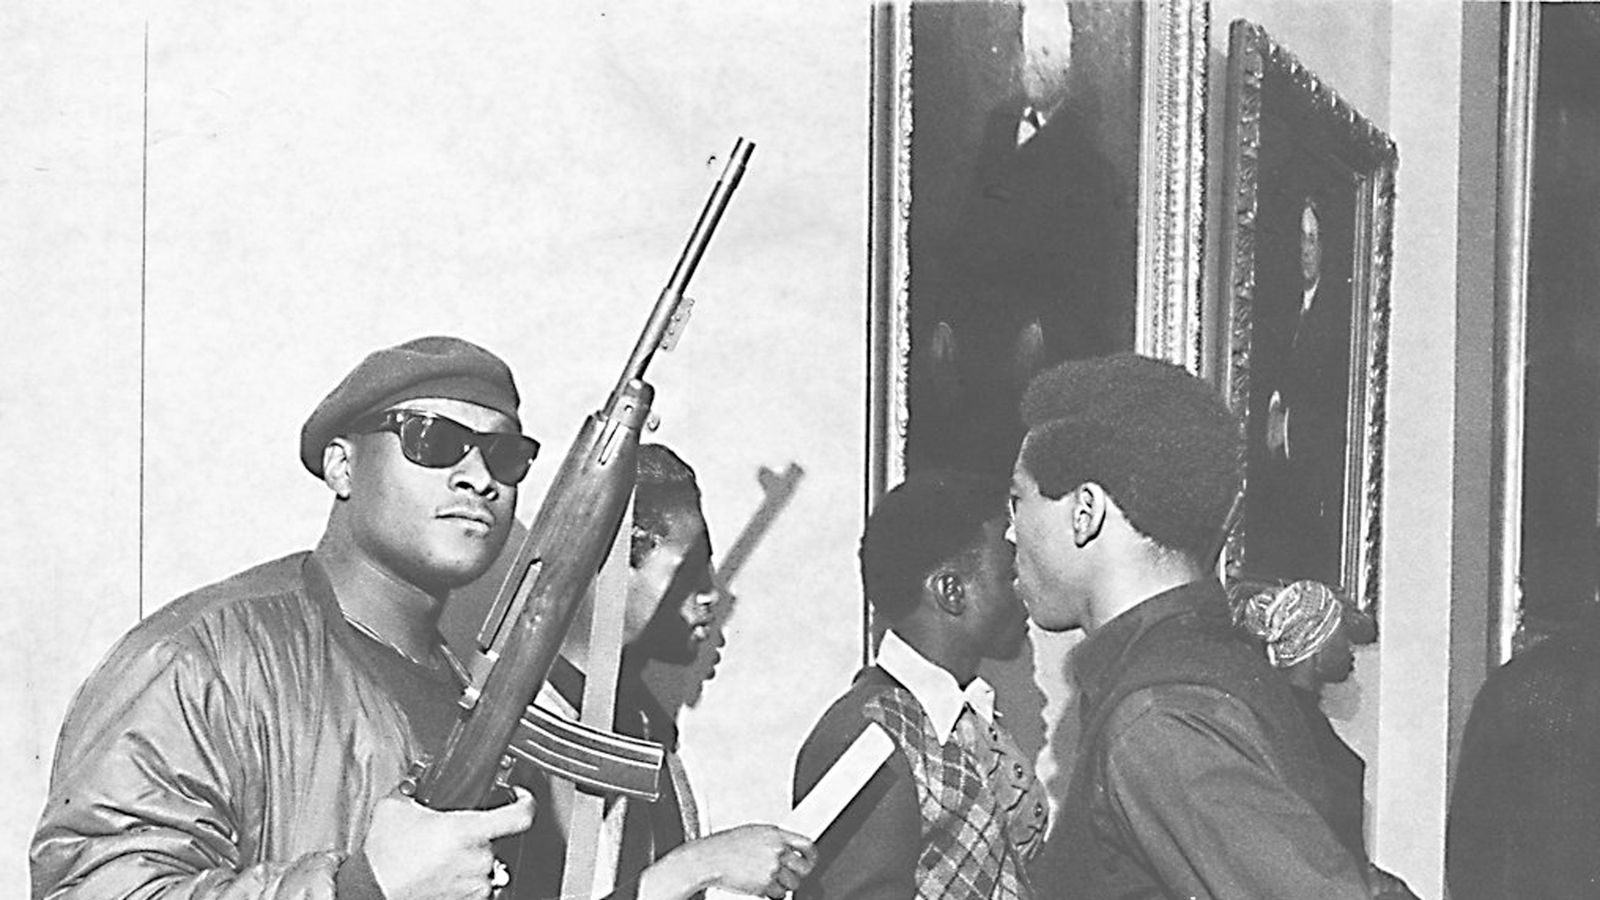 black panther party during the 1960s essay The black panther party was a left-wing organization founded in 1966 for the defense of african americans (katsiaficas, and cleaver 3) it was founded in oakland, california by bobby seale and huey newton and would go on to gain fame all over the united states for its deep commitment to defend the.